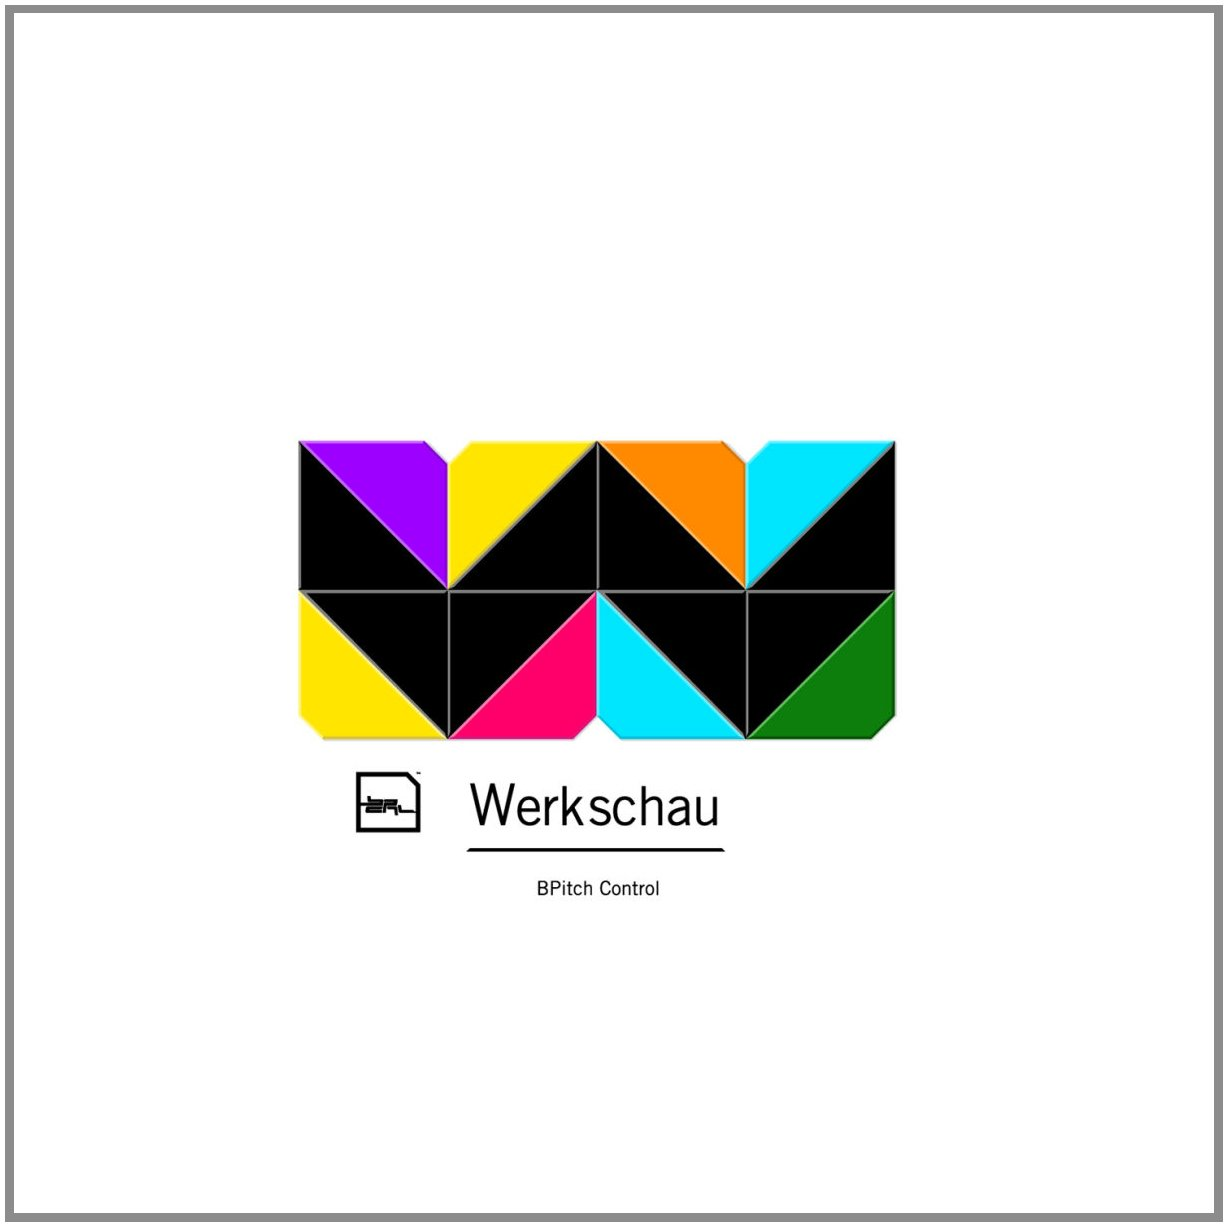 Cheap mail order Max 72% OFF specialty store Werkschau Various